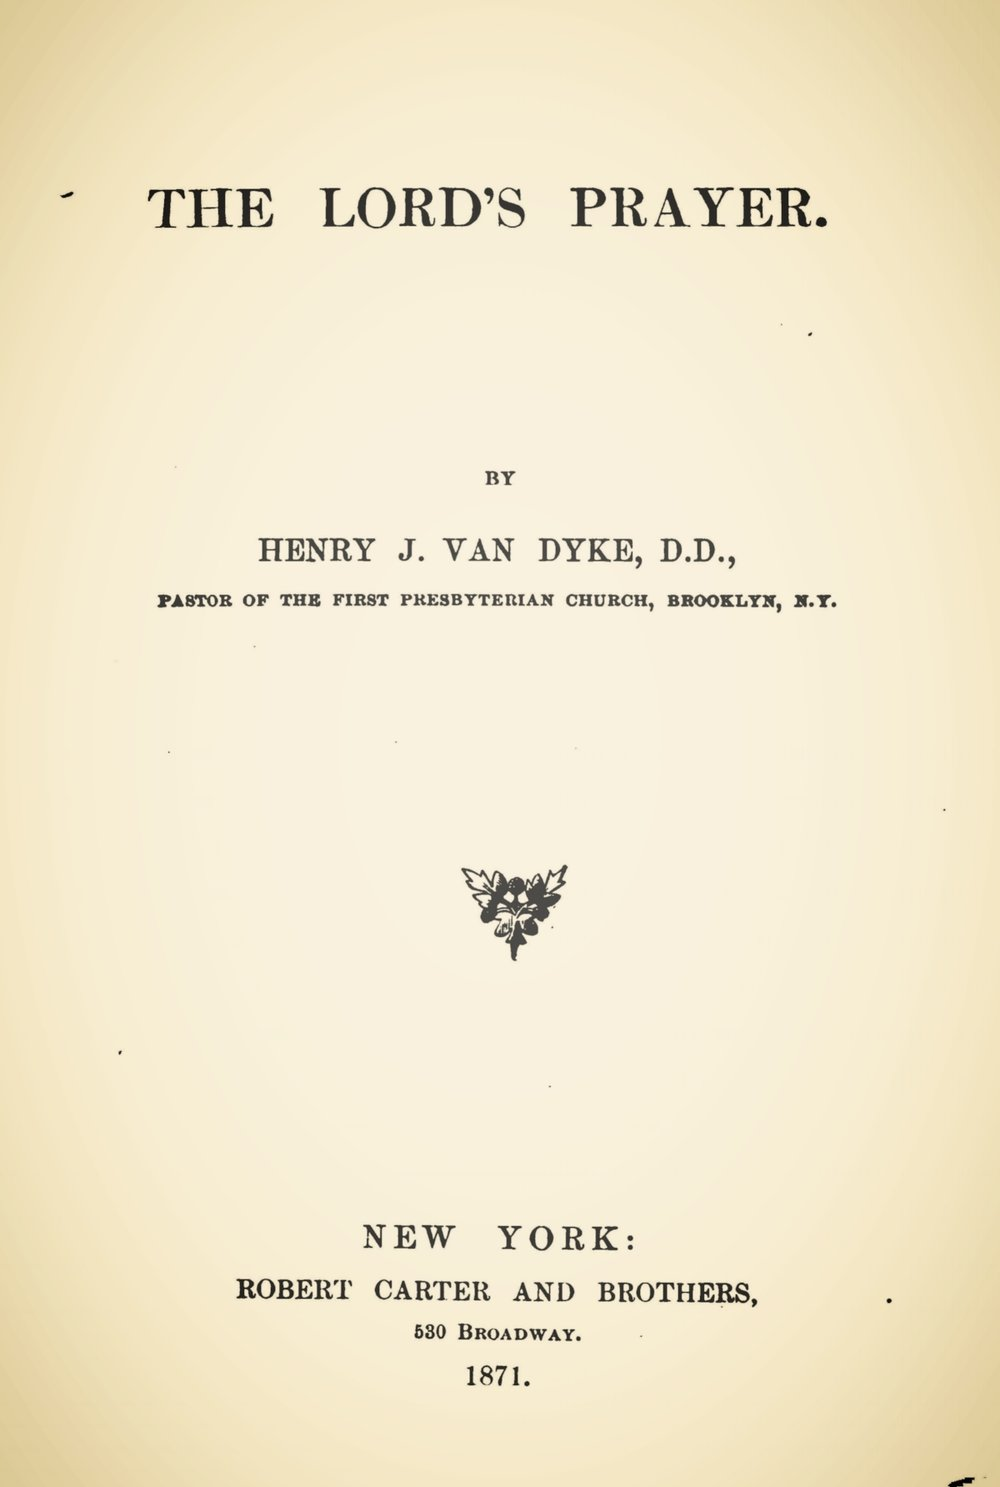 Van Dyke, Sr., Henry Jackson, The Lord's Prayer Title Page.jpg